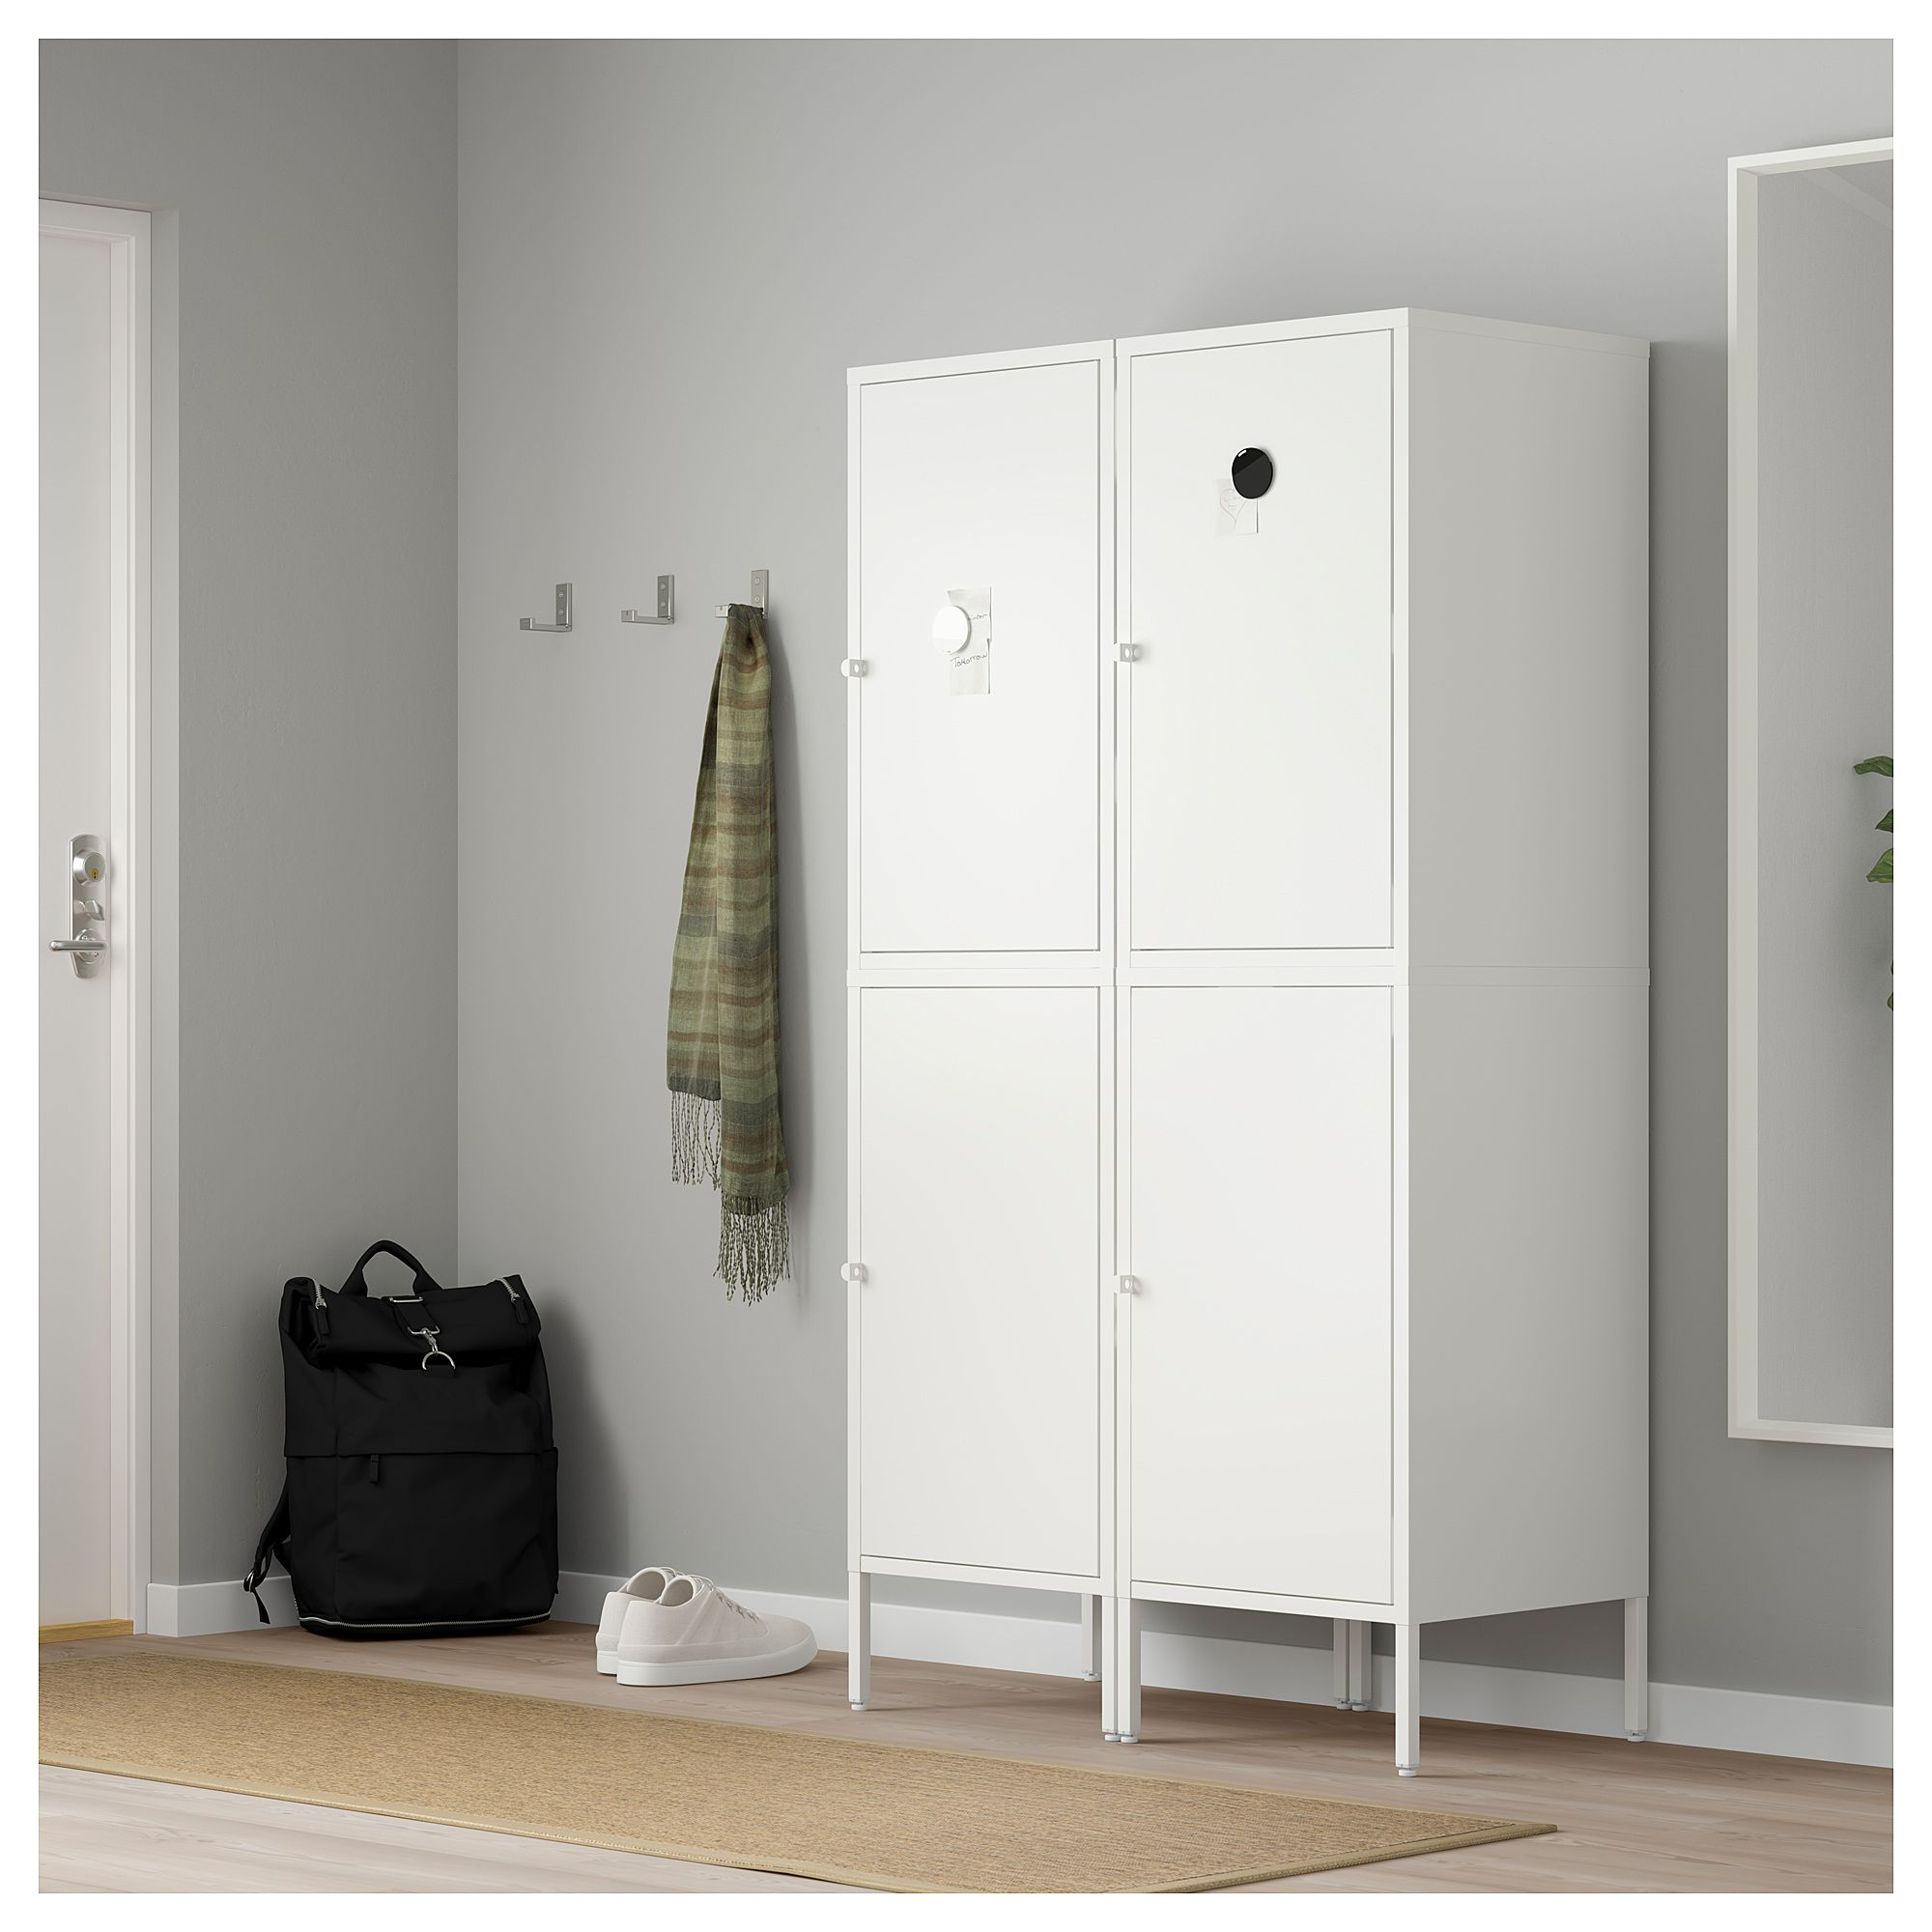 Ikea Storage Cabinets Ikea HÄllan Storage Combination With Doors White Mudroom